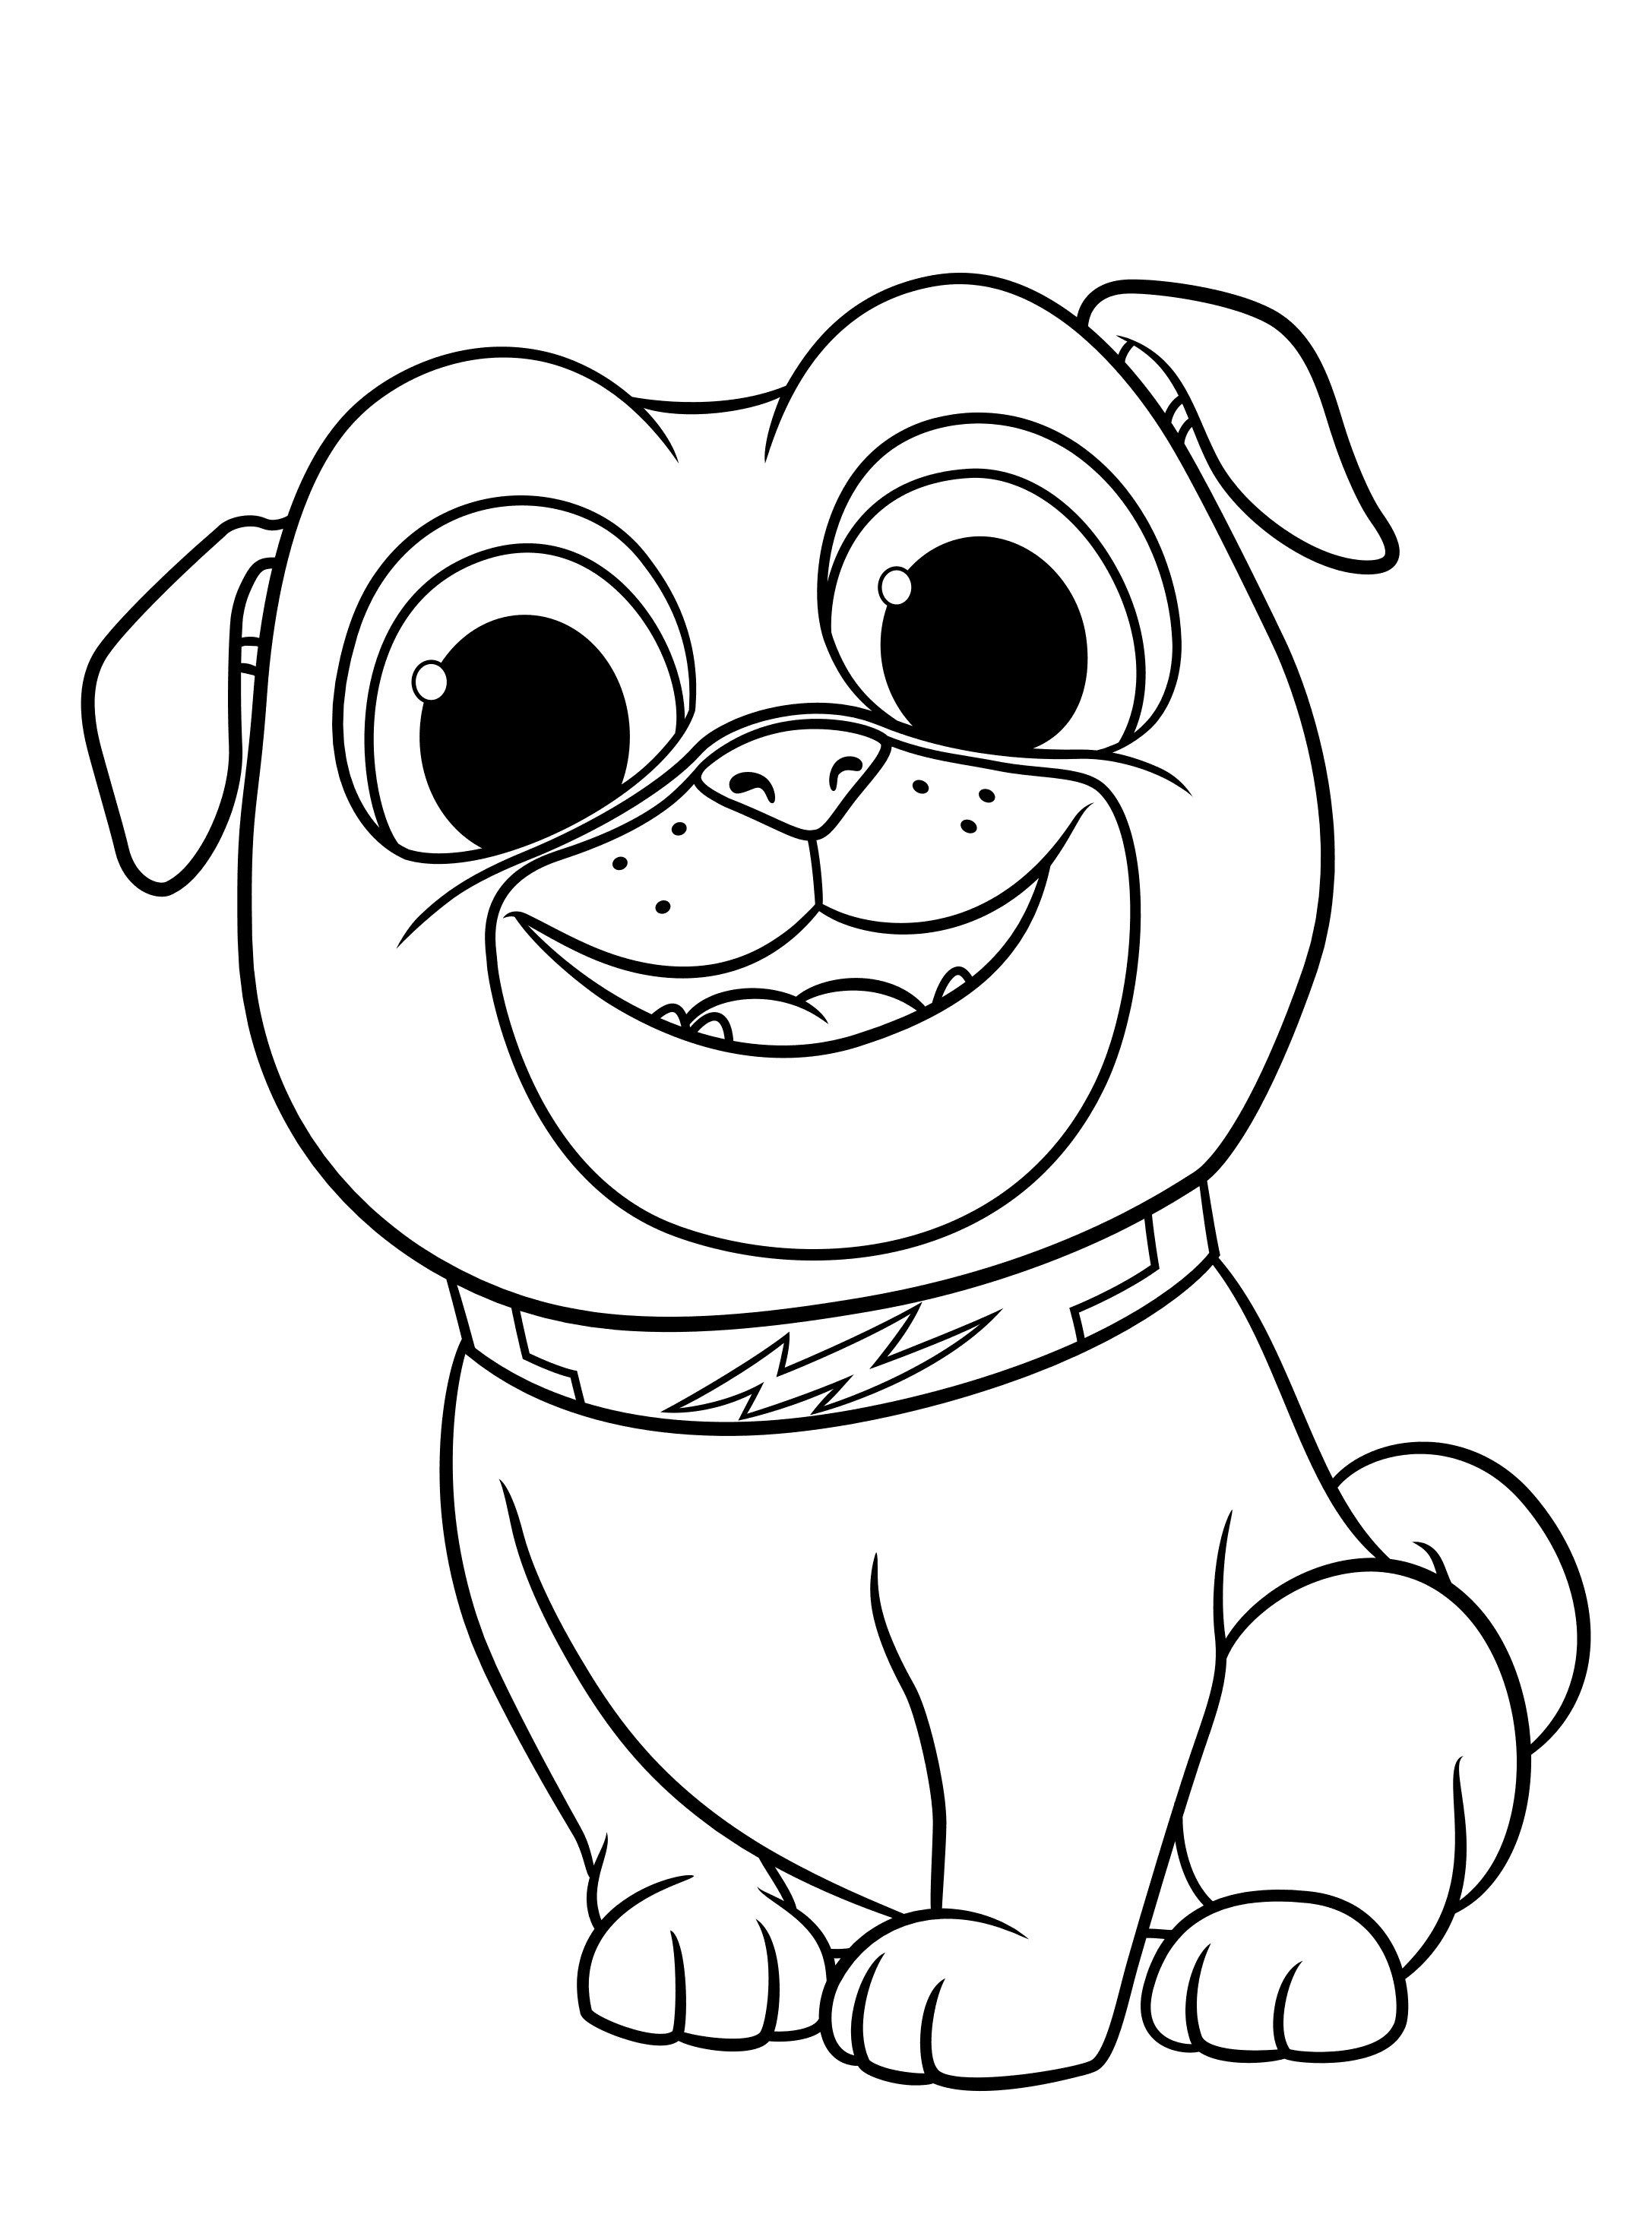 Coloring Ideas Puppy Dog Pals Coloring Page Pages Arenda Puppy Coloring Pages Dog Coloring Page Unicorn Coloring Pages